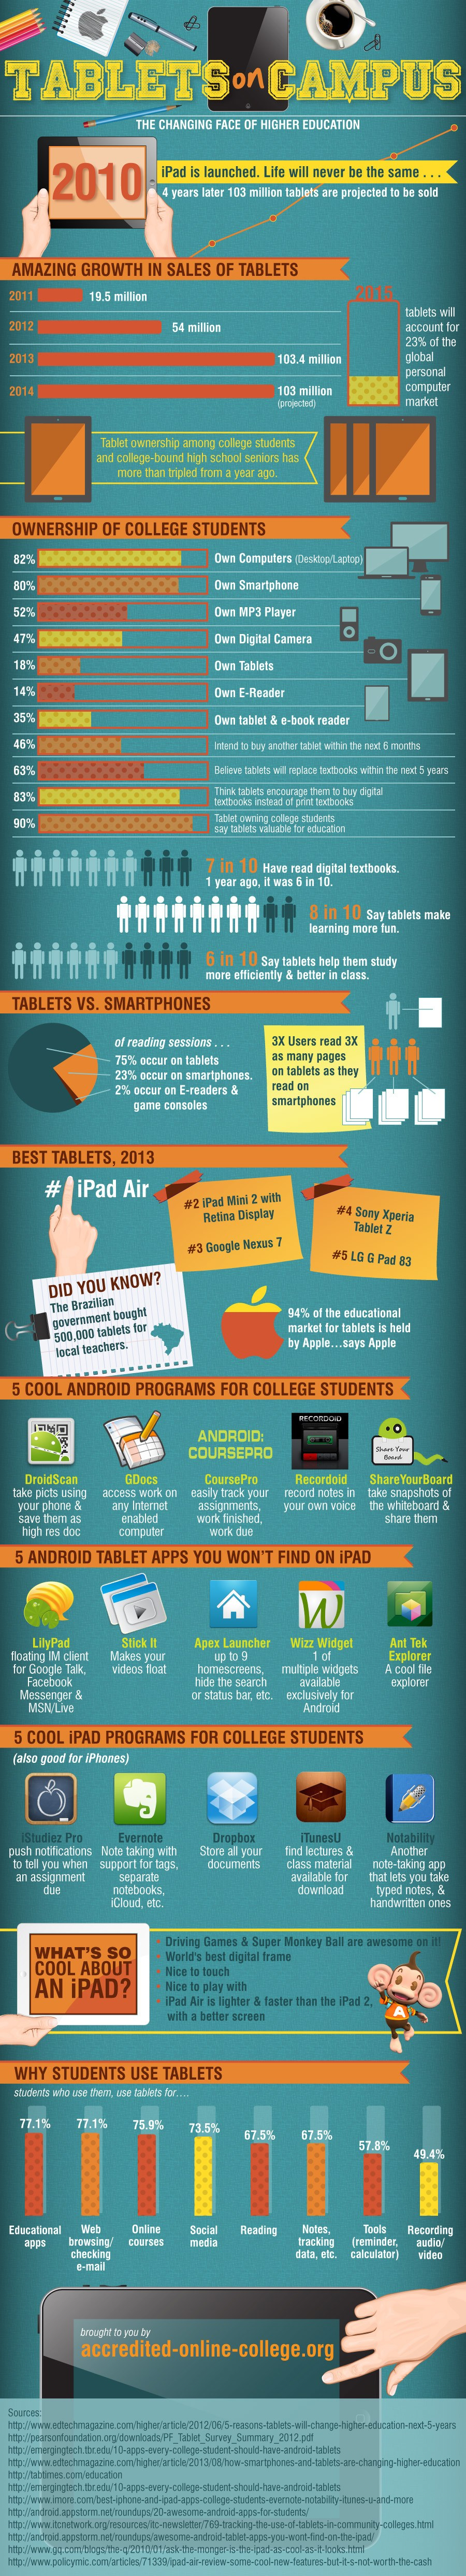 How-Tablets-are-Changing-the-Face-of-Higher-Education-Infographic